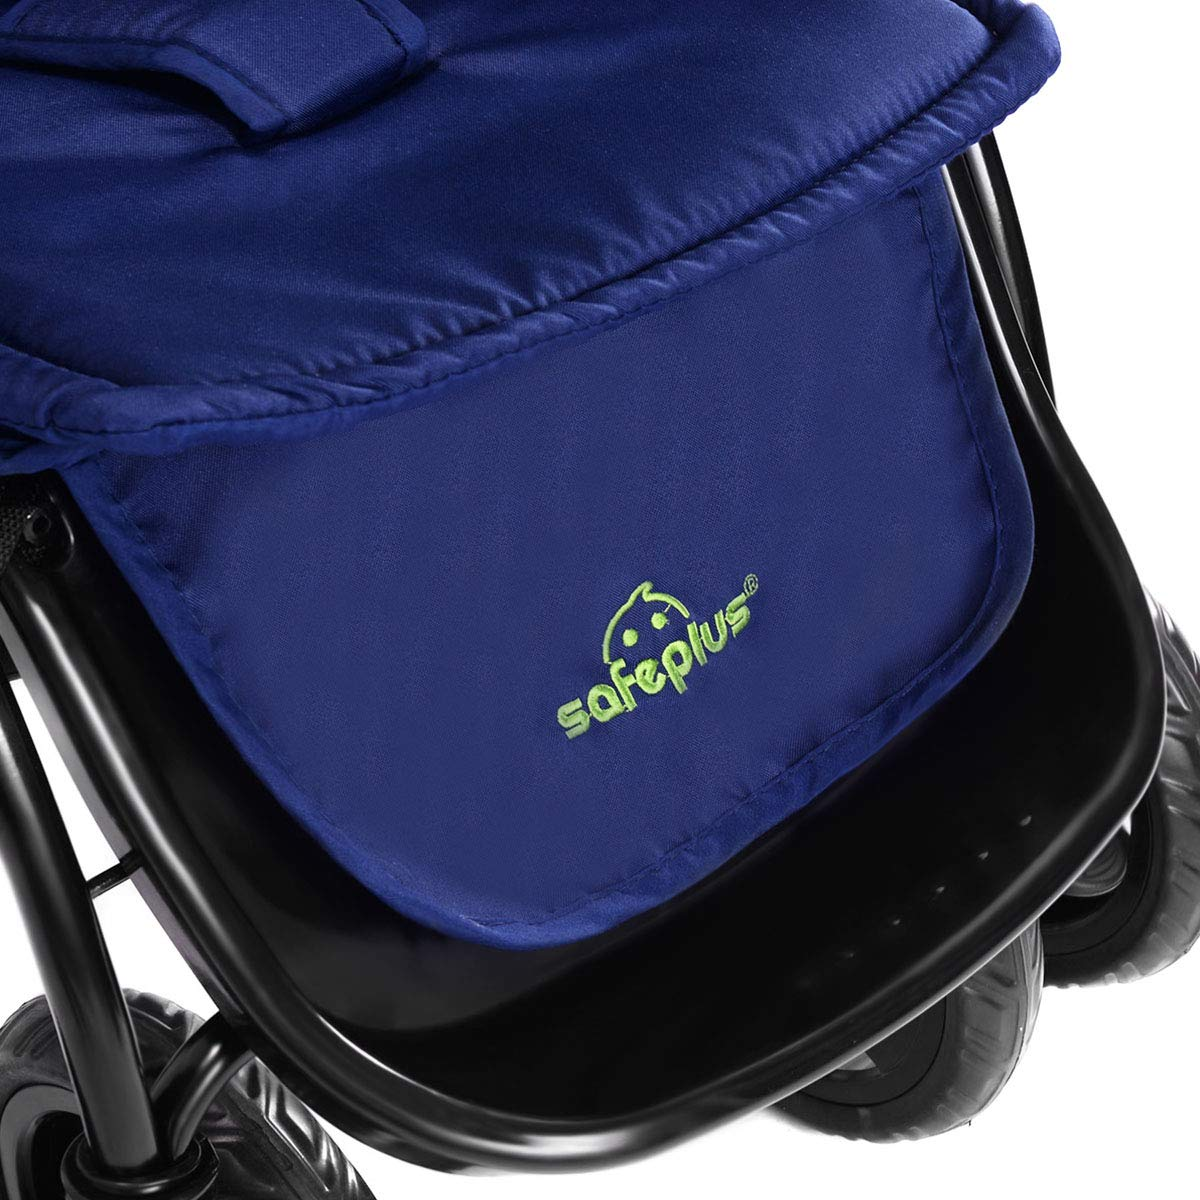 Large Storage Basket HOMGX Two-Way Baby Stroller with Oriented Front Wheel and Lockable Rear Wheel Foot Cover deep Blue 2 in 1 Compact Folding Stroller Includes Adjustable Canopy Back Seat